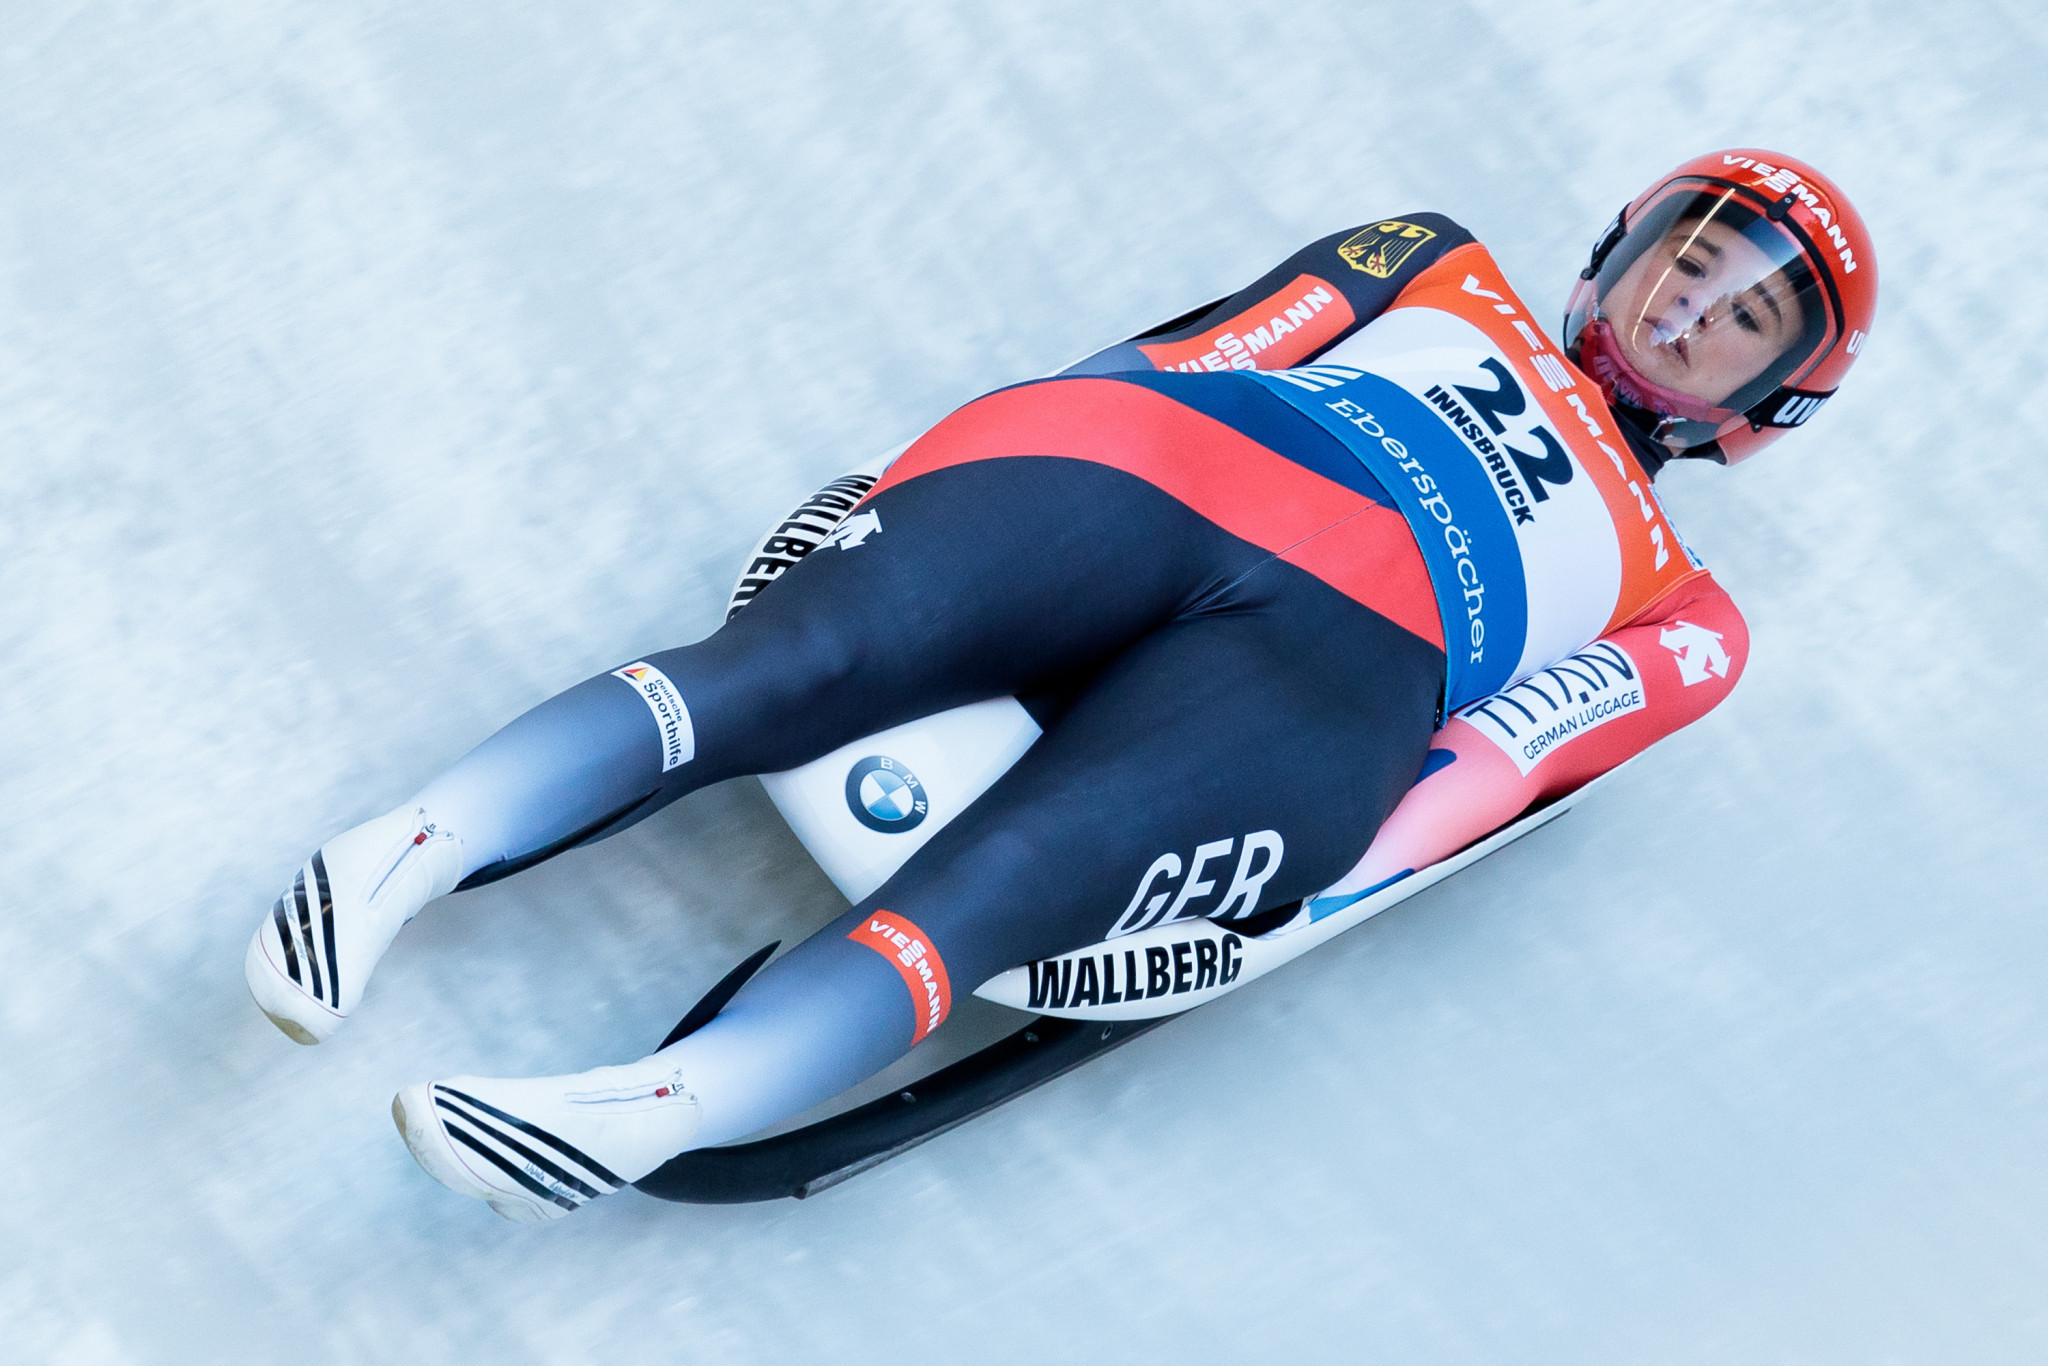 Luge World Cup opener in Innsbruck given green light despite new restrictions in Austria